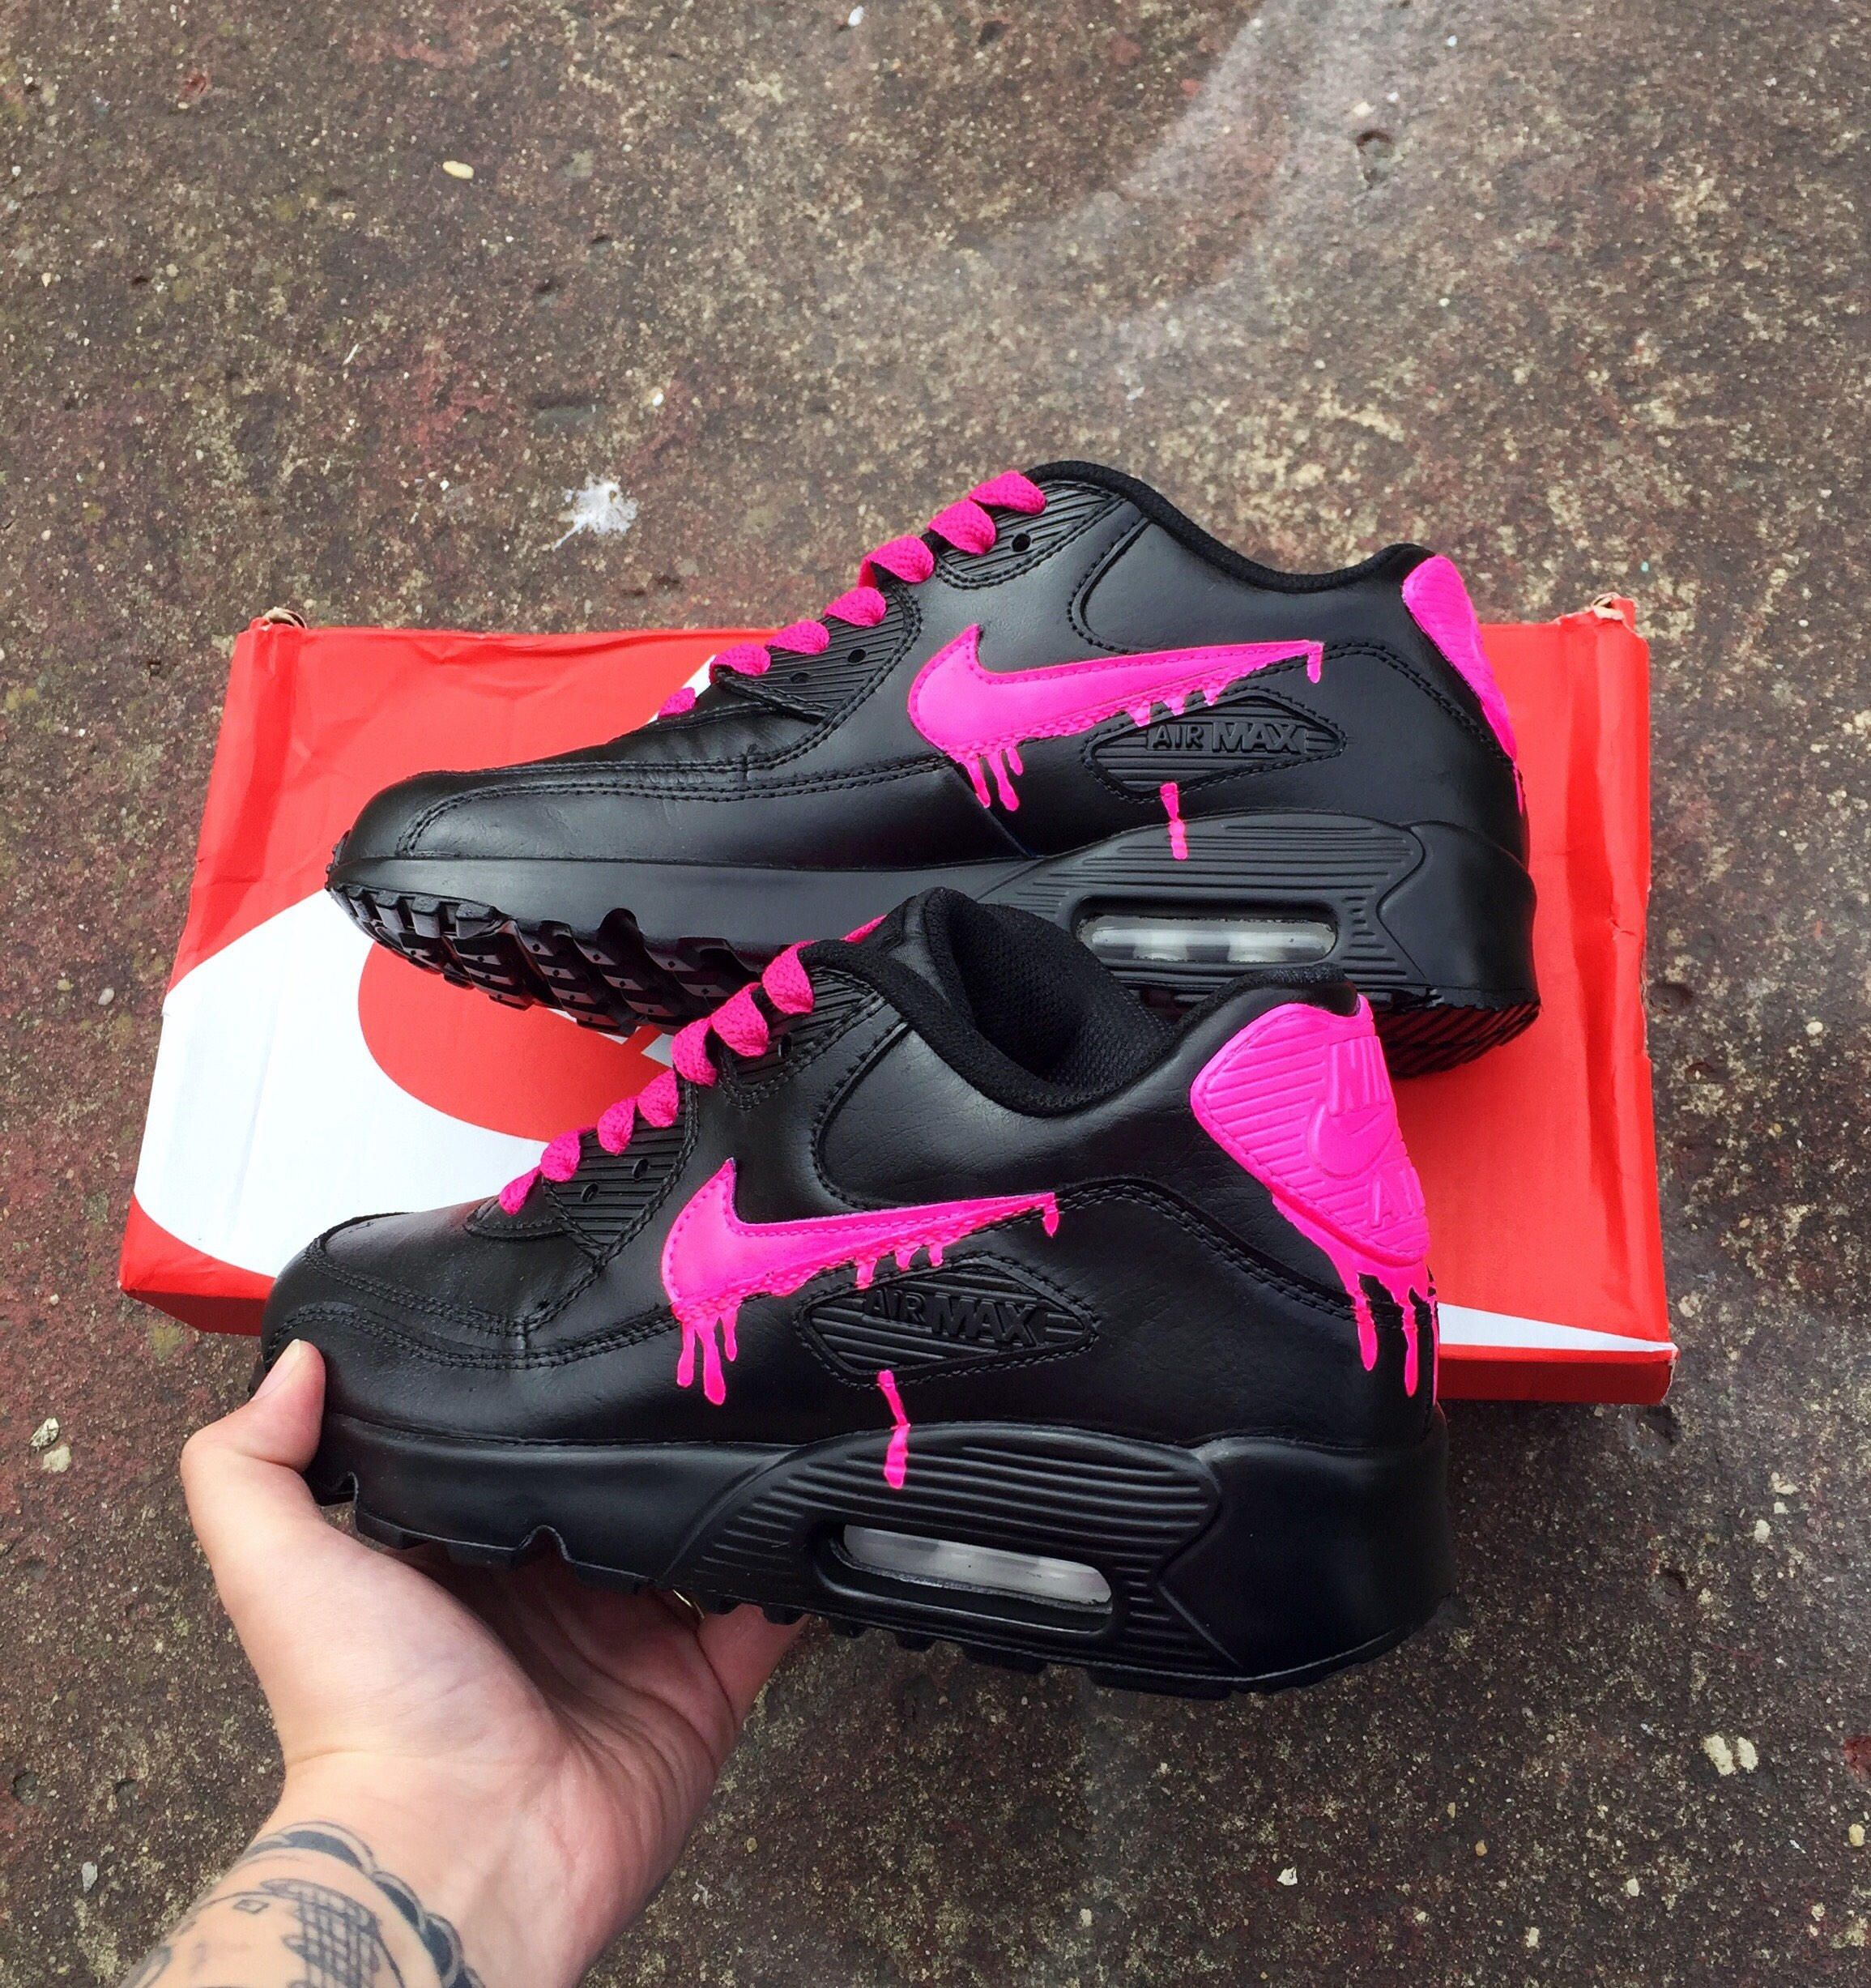 timeless design 9fa24 ccb44 Womens Nike Air Max 90 Candy Drip Neon Pink Trainer http   feedproxy.